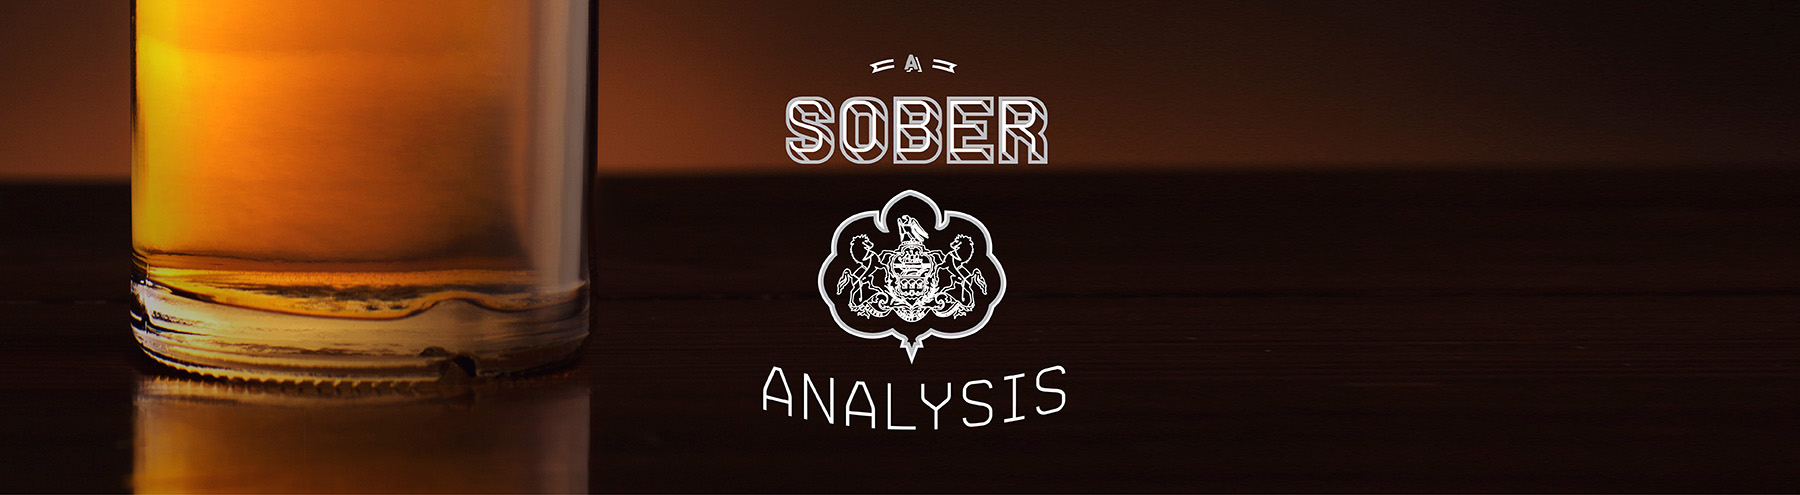 Sober Analysis